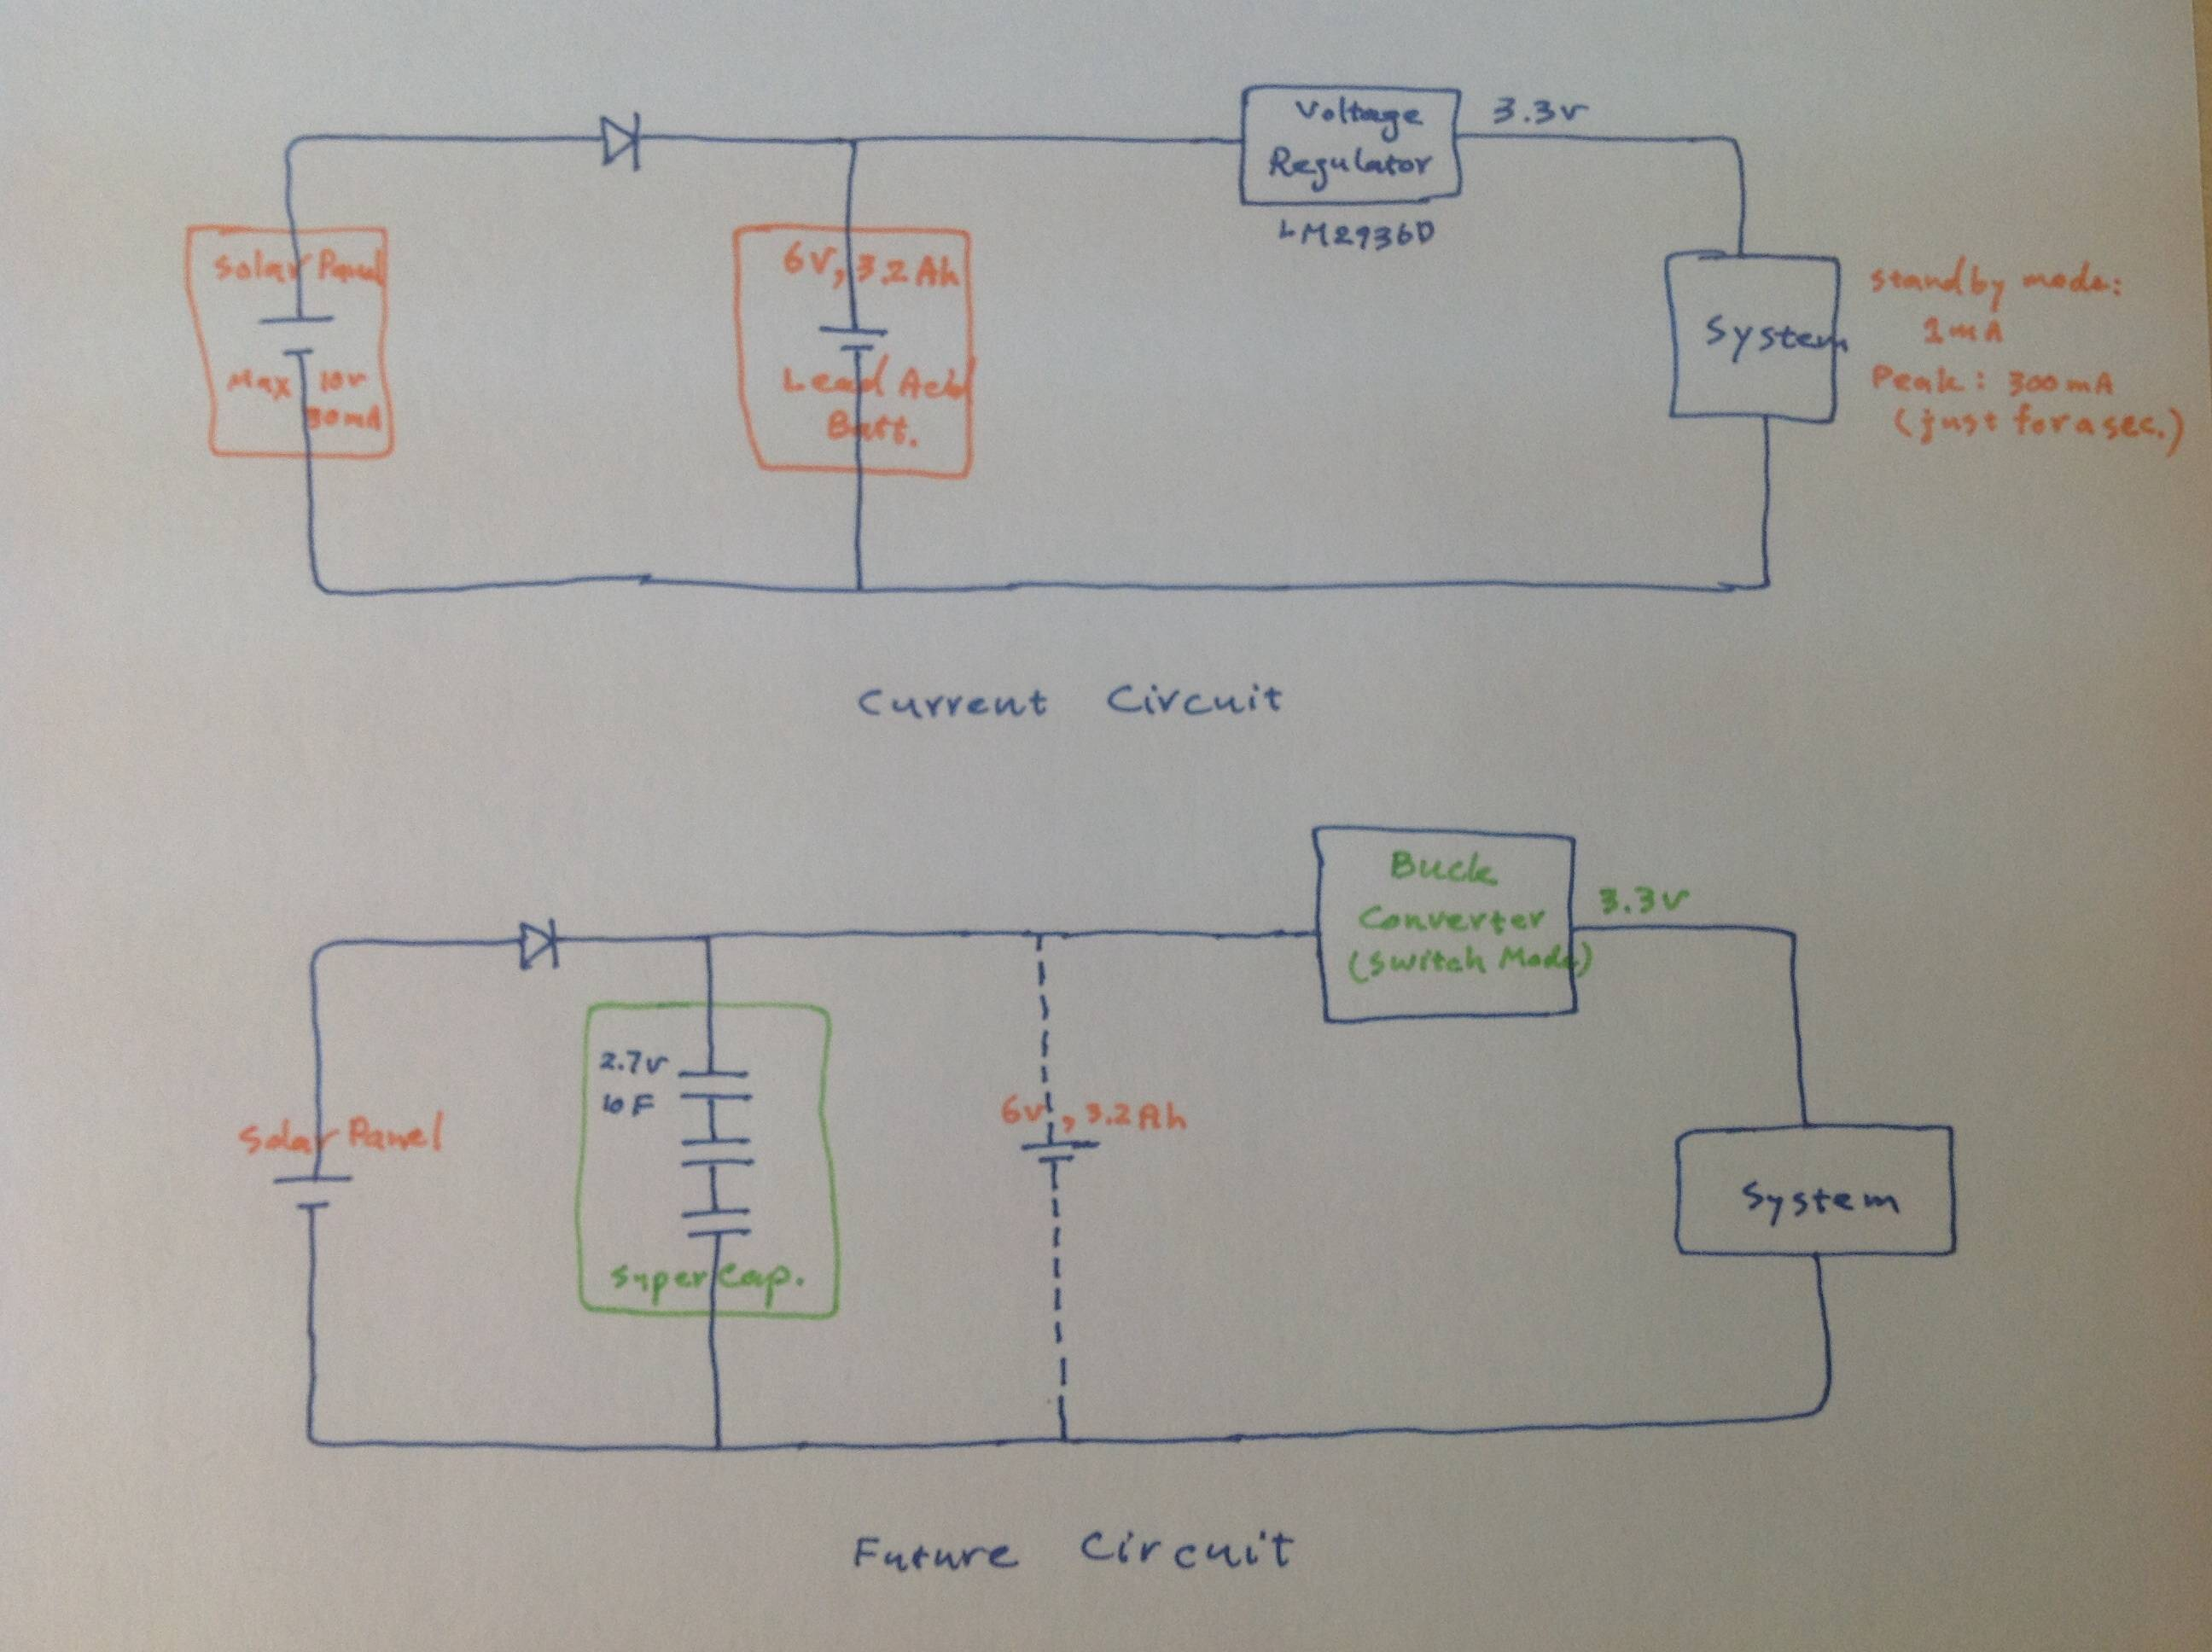 circuit diagram of solar power system what is a cycle batteries how can i modify the charging with source and storage device